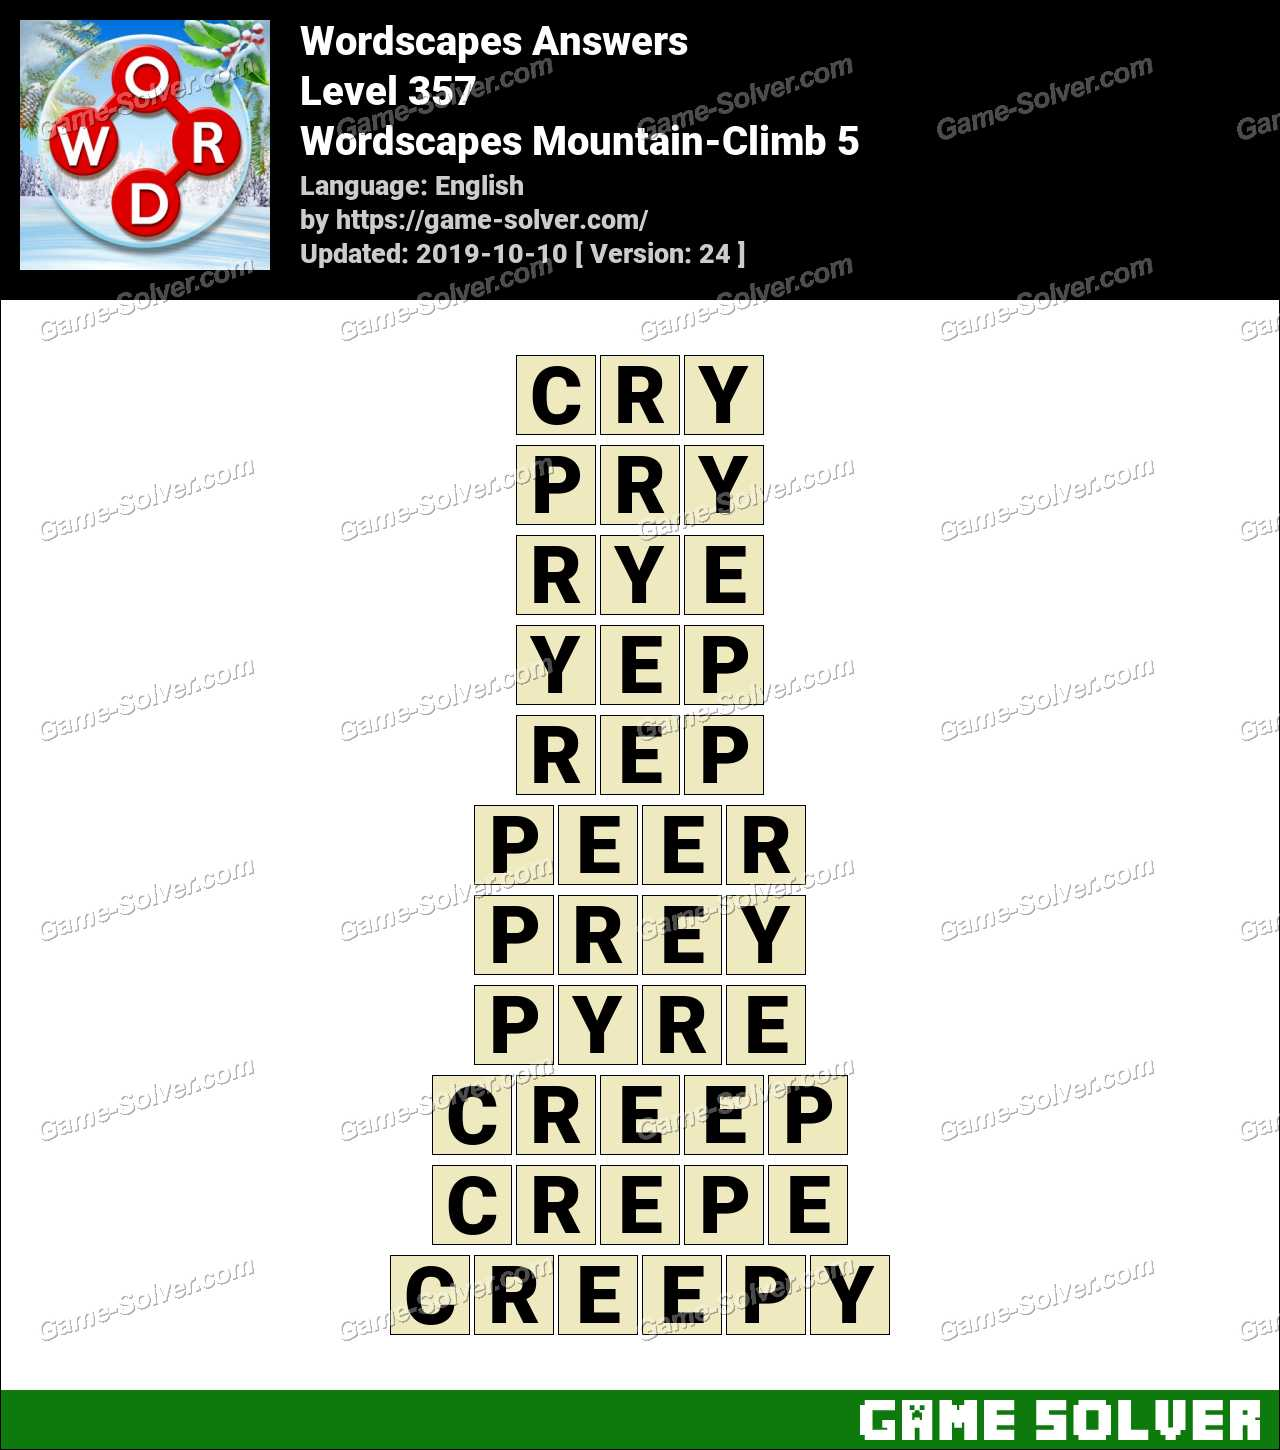 Wordscapes Mountain-Climb 5 Answers